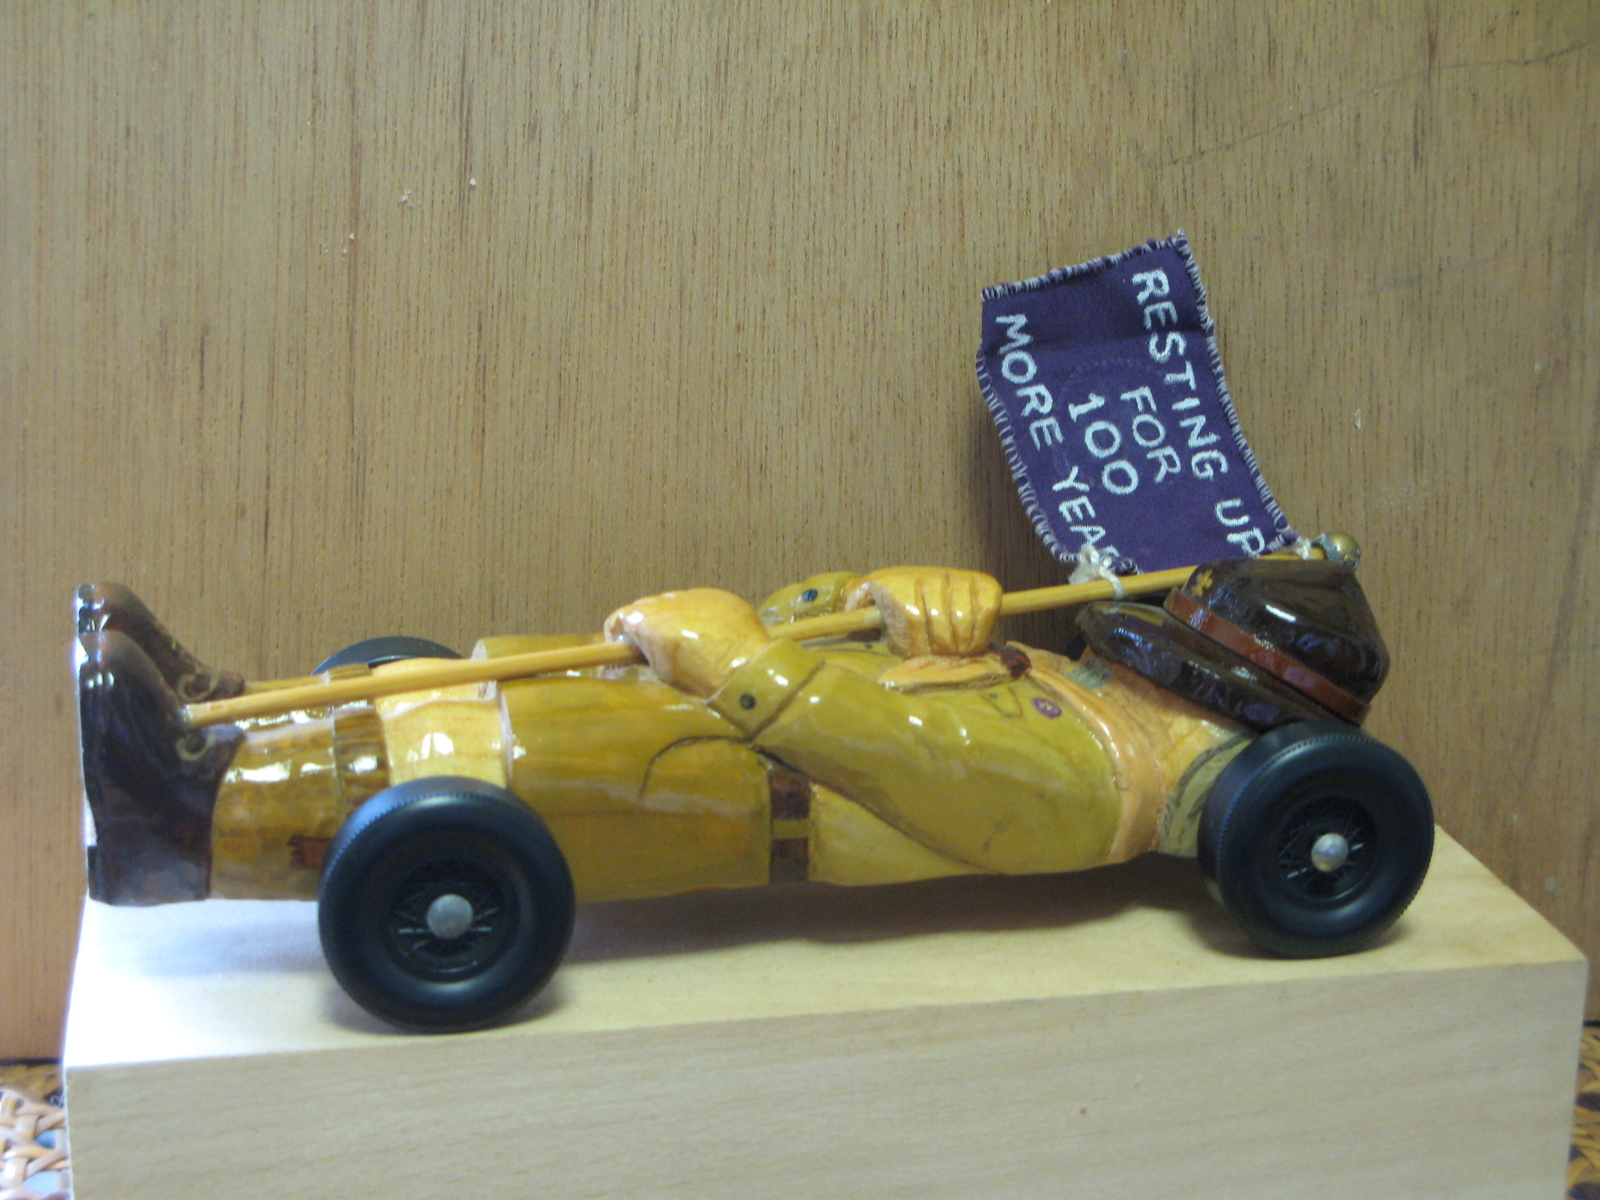 A whittle scouting still more pinewood derby cars